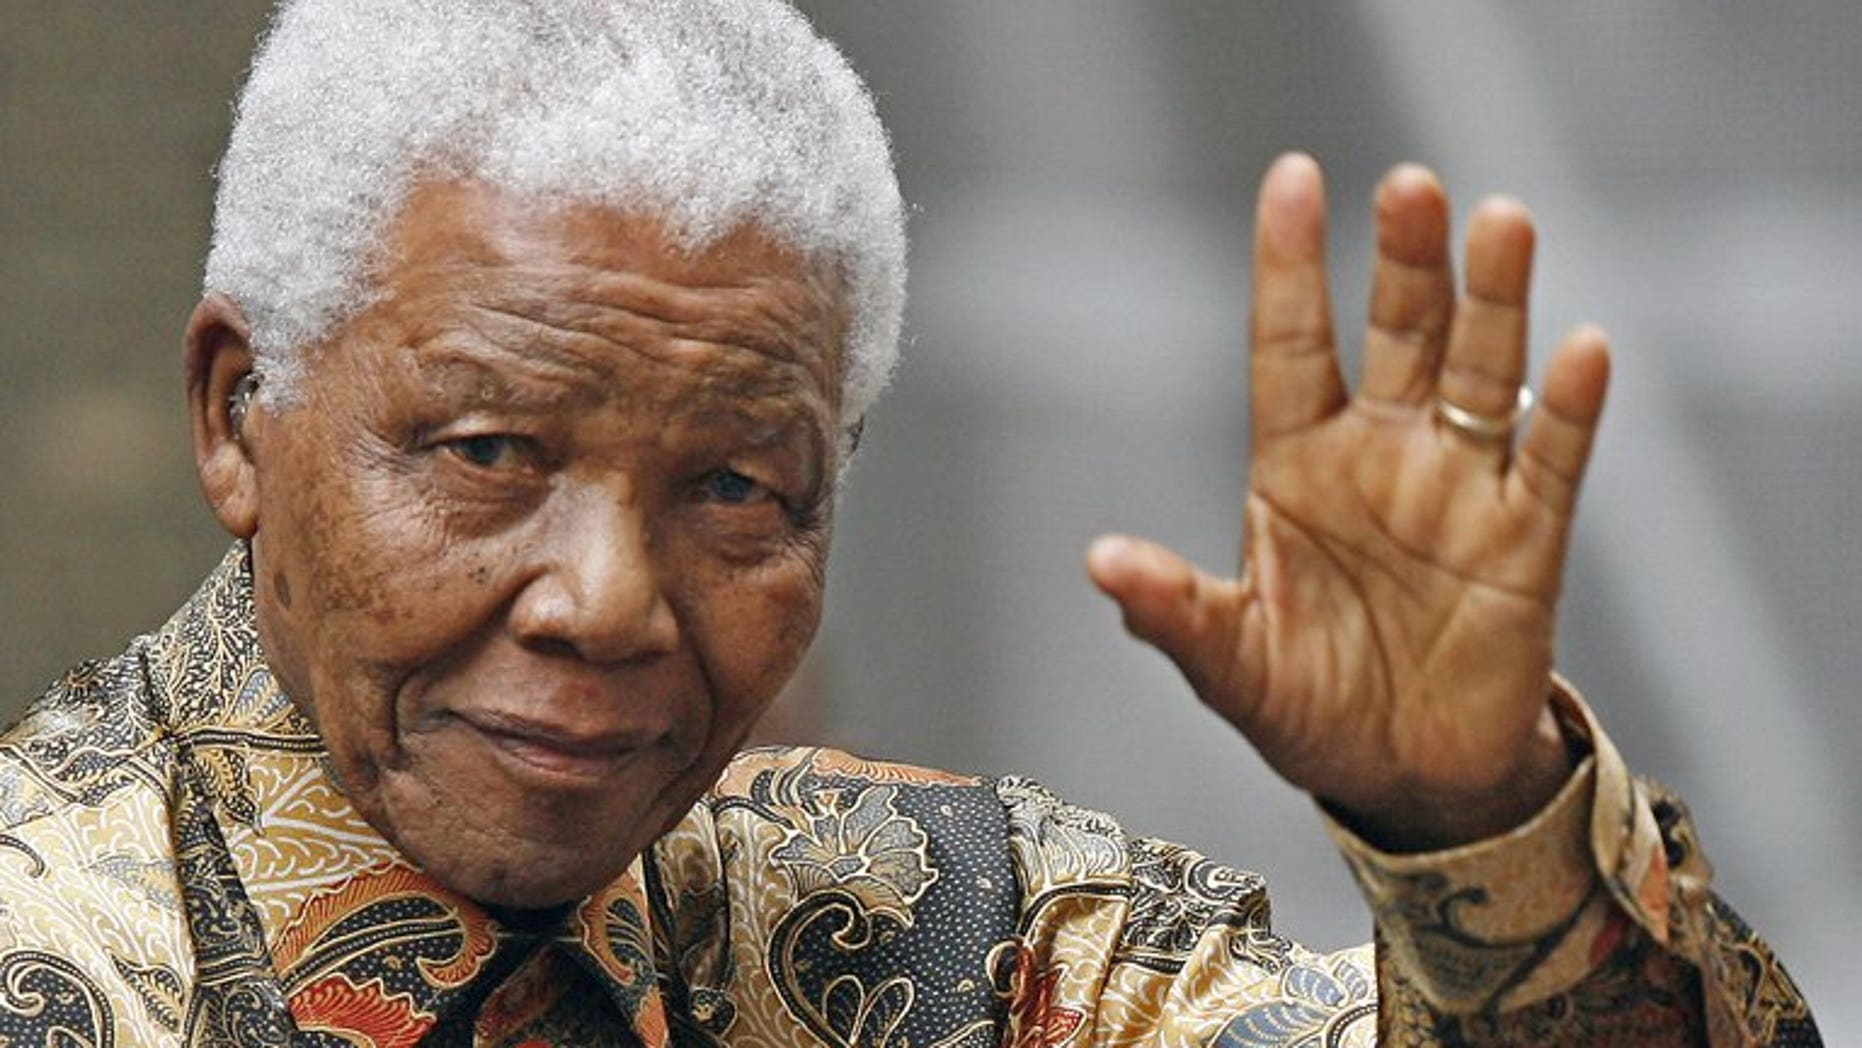 """Nelson Mandela waves to the media as he arrives outside No 10 Downing Street in central London, on August 28, 2007. Doctors treating Mandela said that he was in a """"permanent vegetative state"""" and advised his family to turn off his life support machine, according to court documents dated June 26, obtained by AFP."""